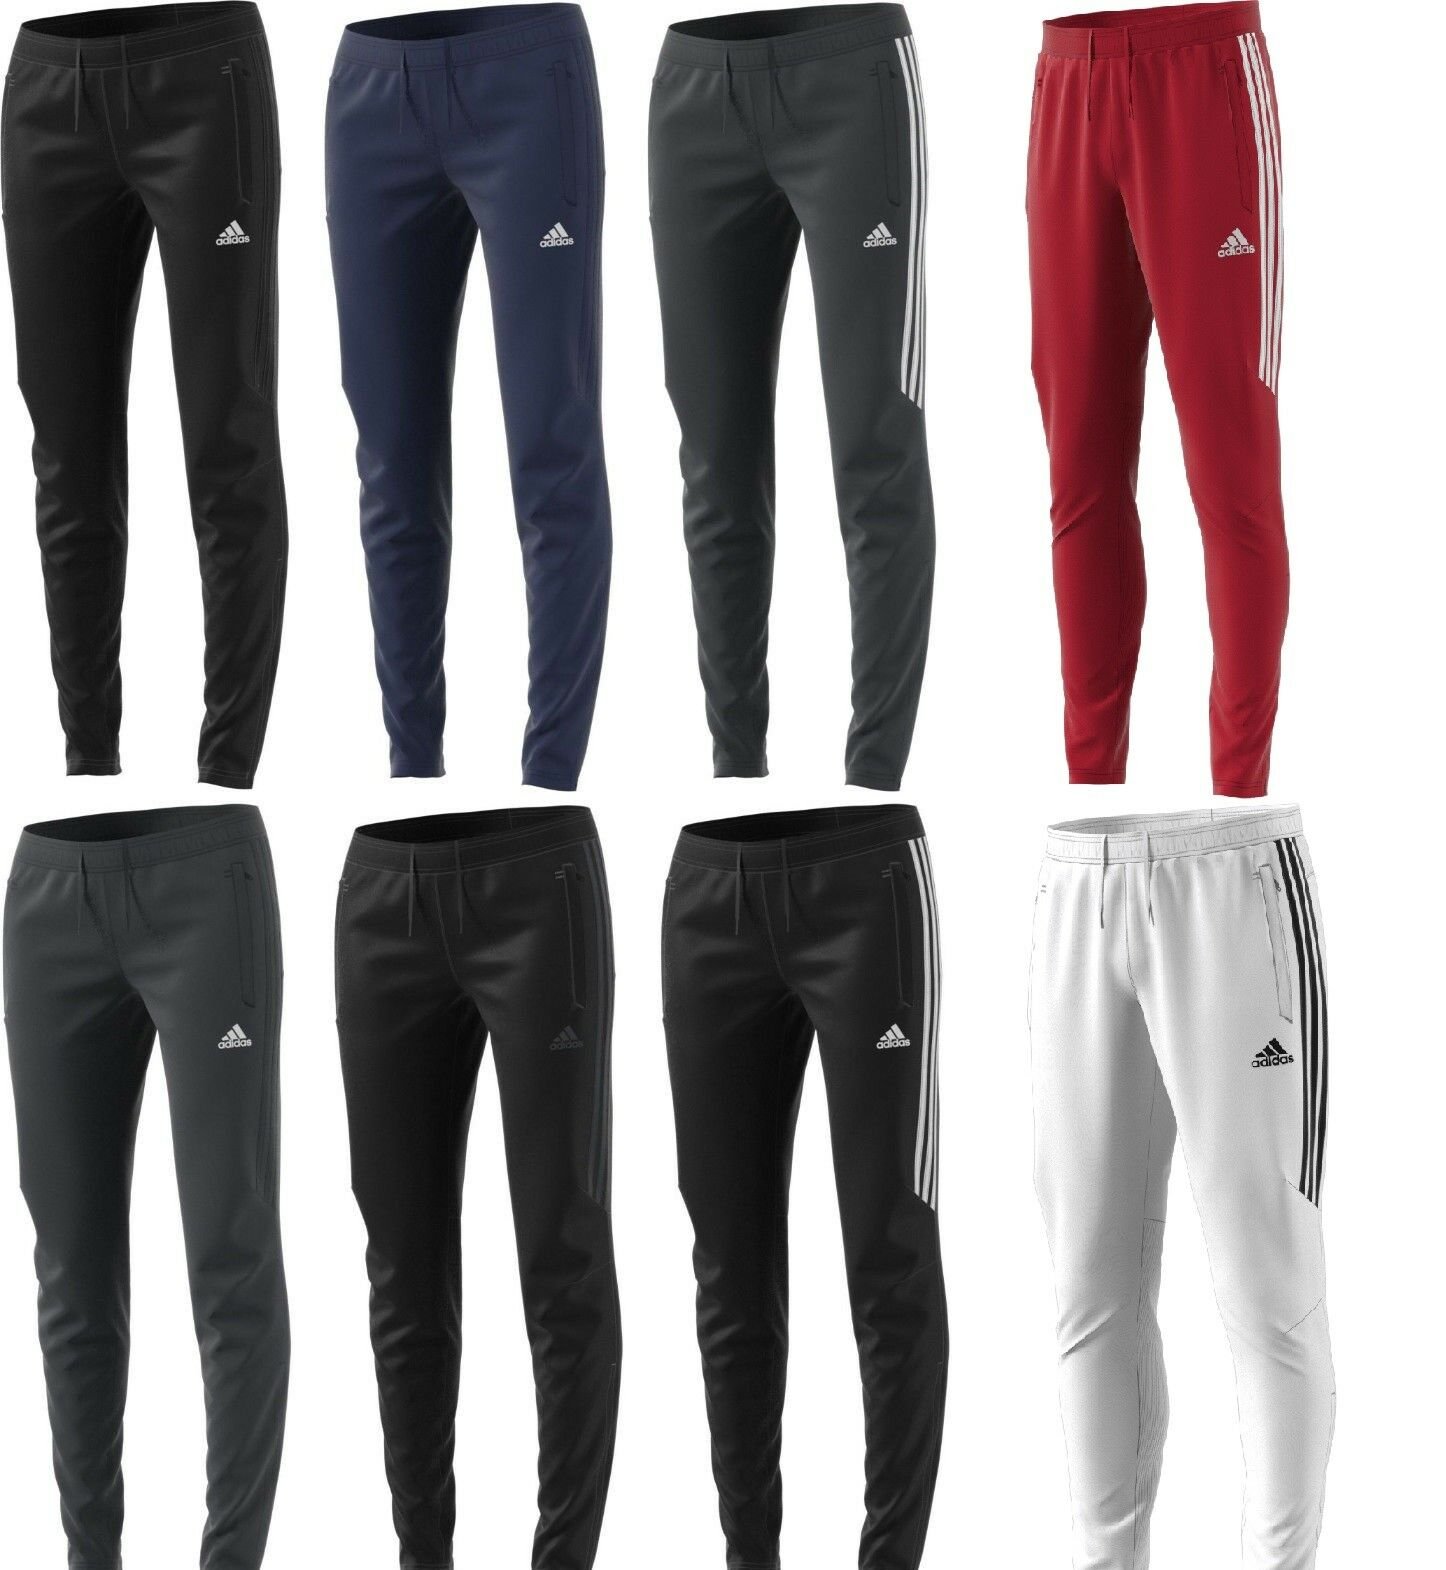 Adidas Men's Tiro 17 Training Pants Only Running Track Suit